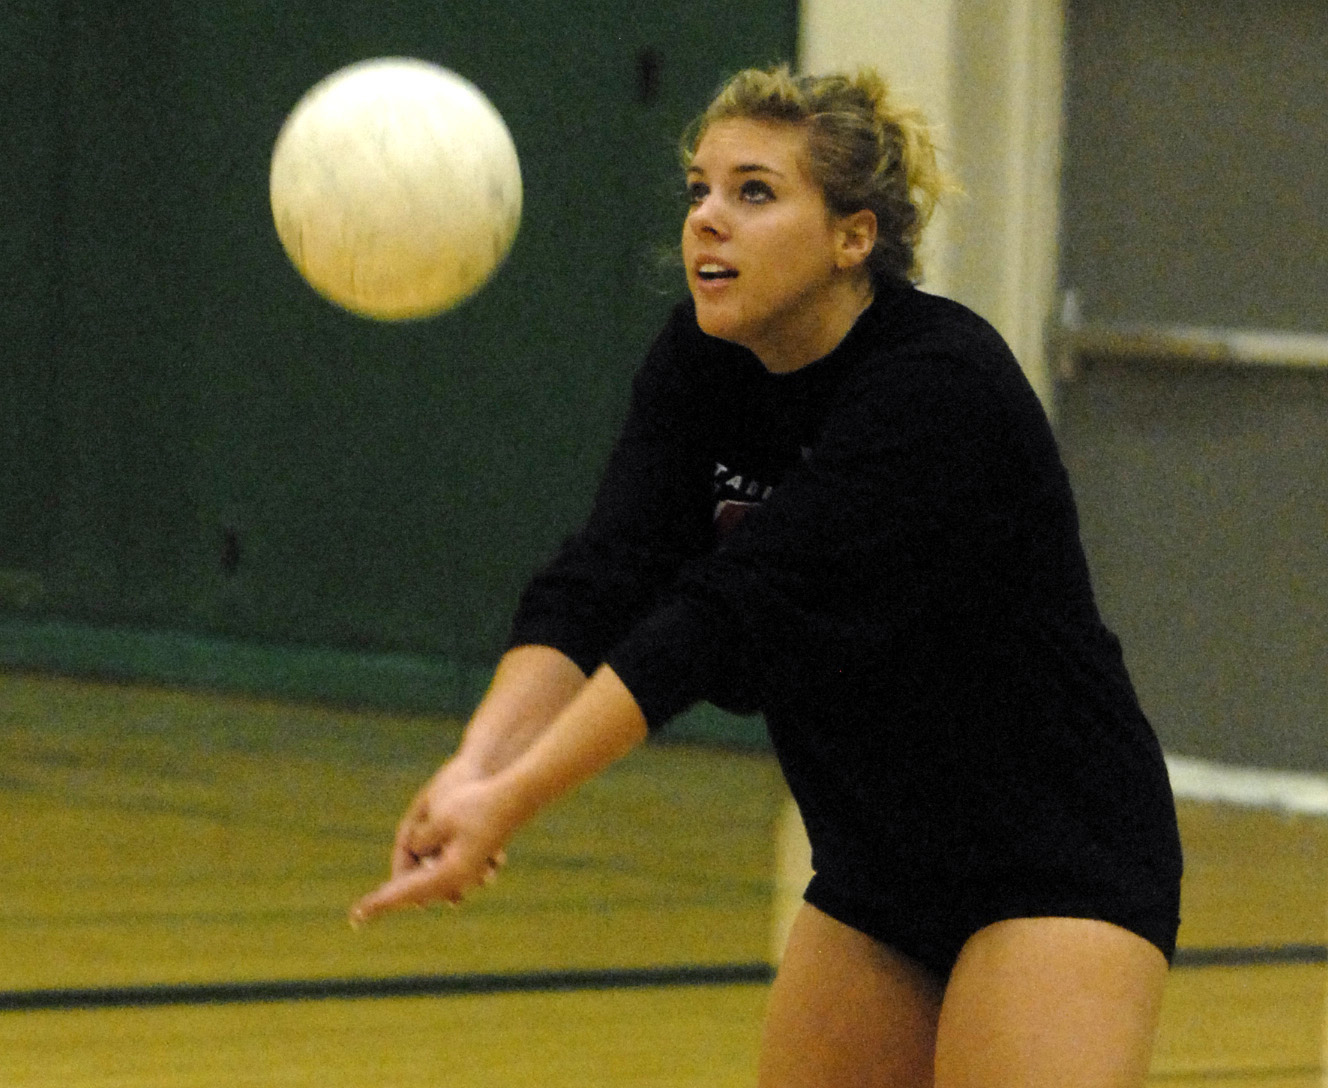 Alyssa Ruland tough competition at the net | the spokesman-review